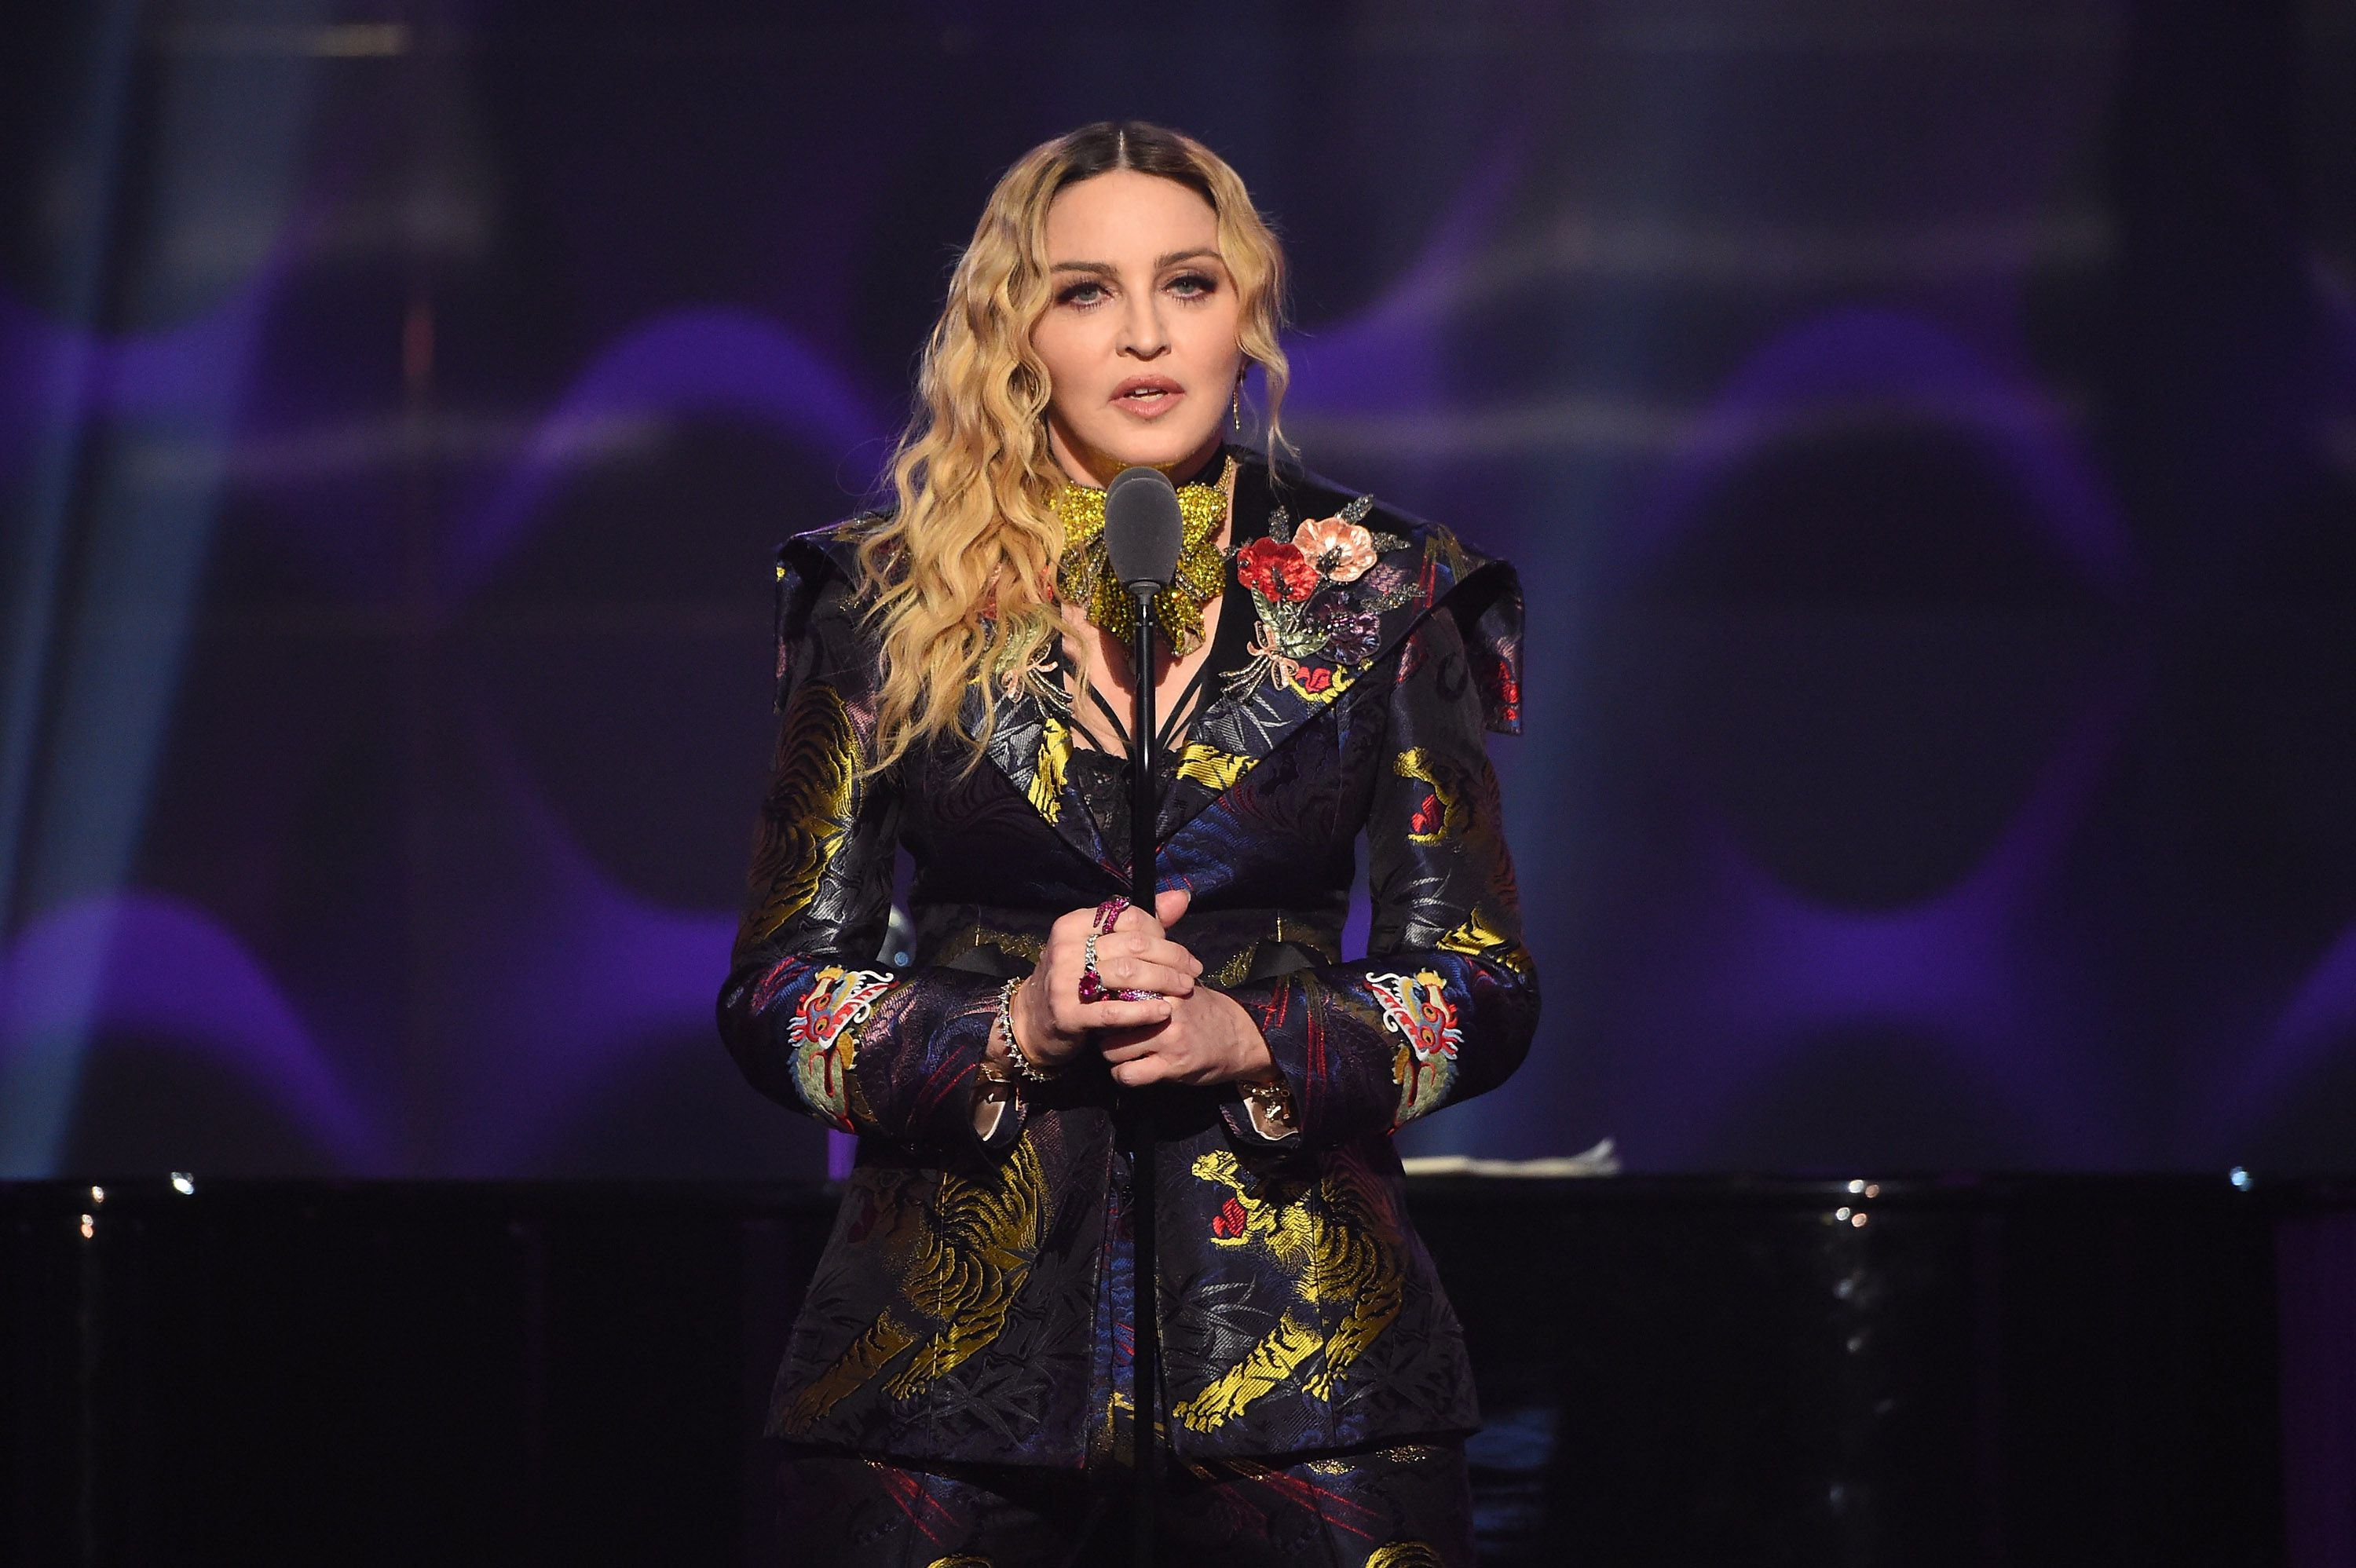 Madonna has been granted permission to adopt twin girls from Malawi